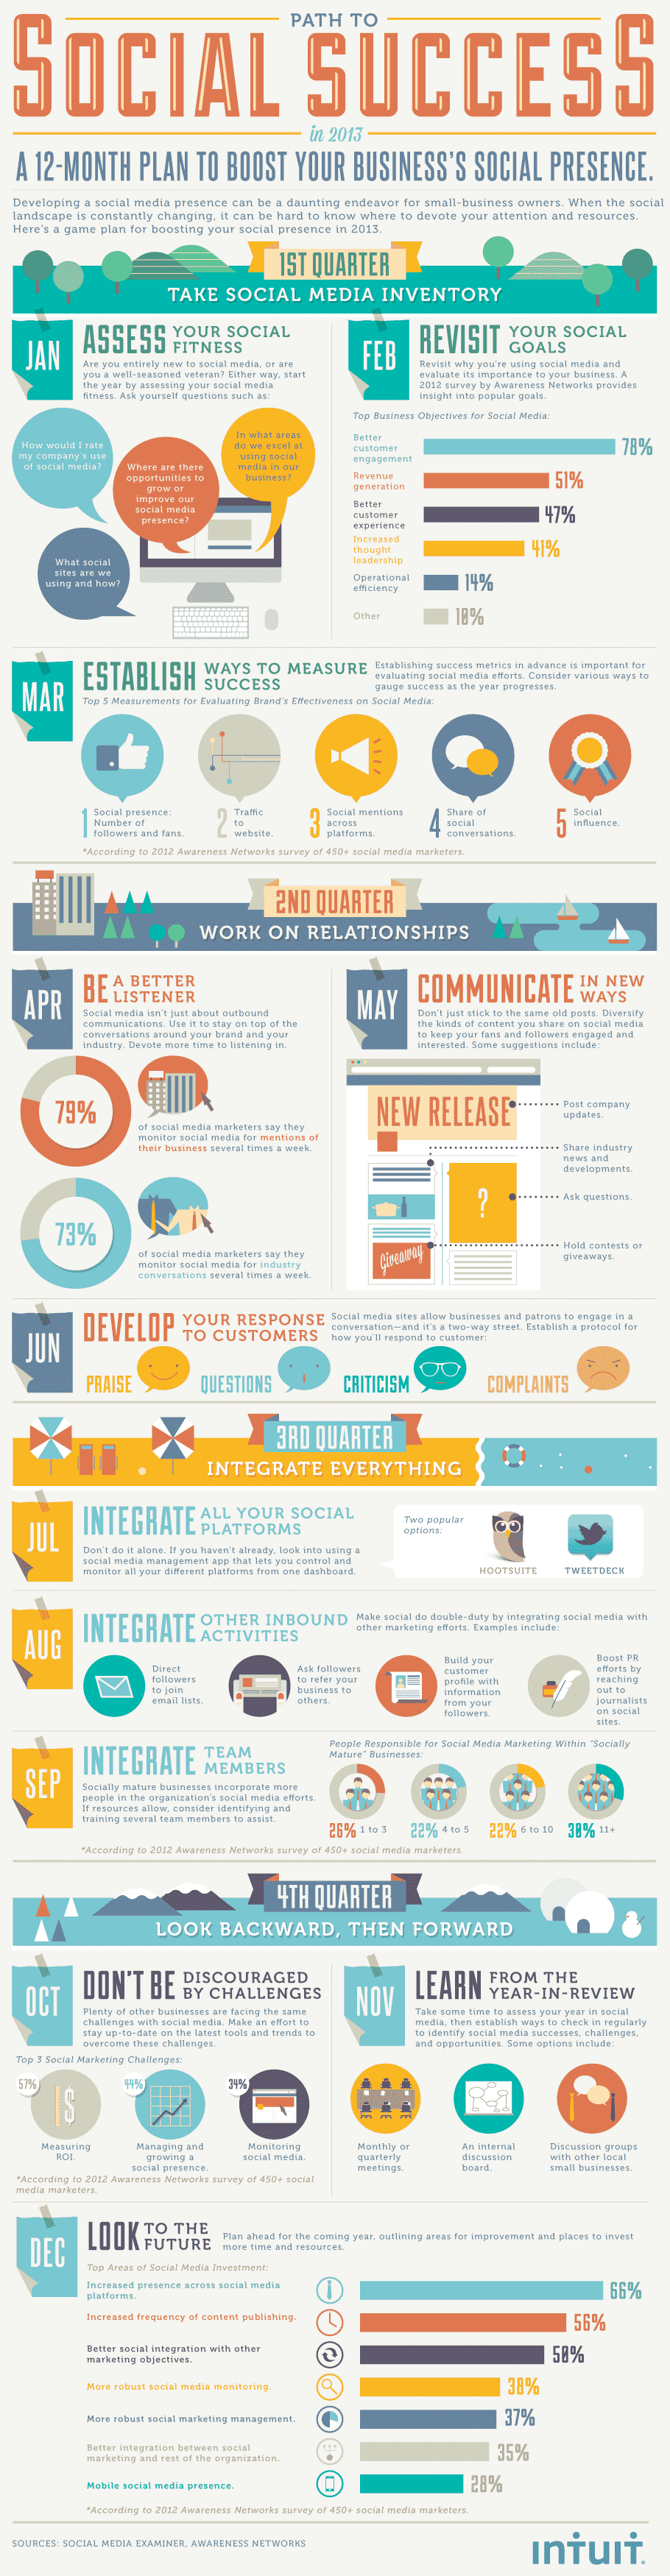 Infographic: Way To Social Success in 2013